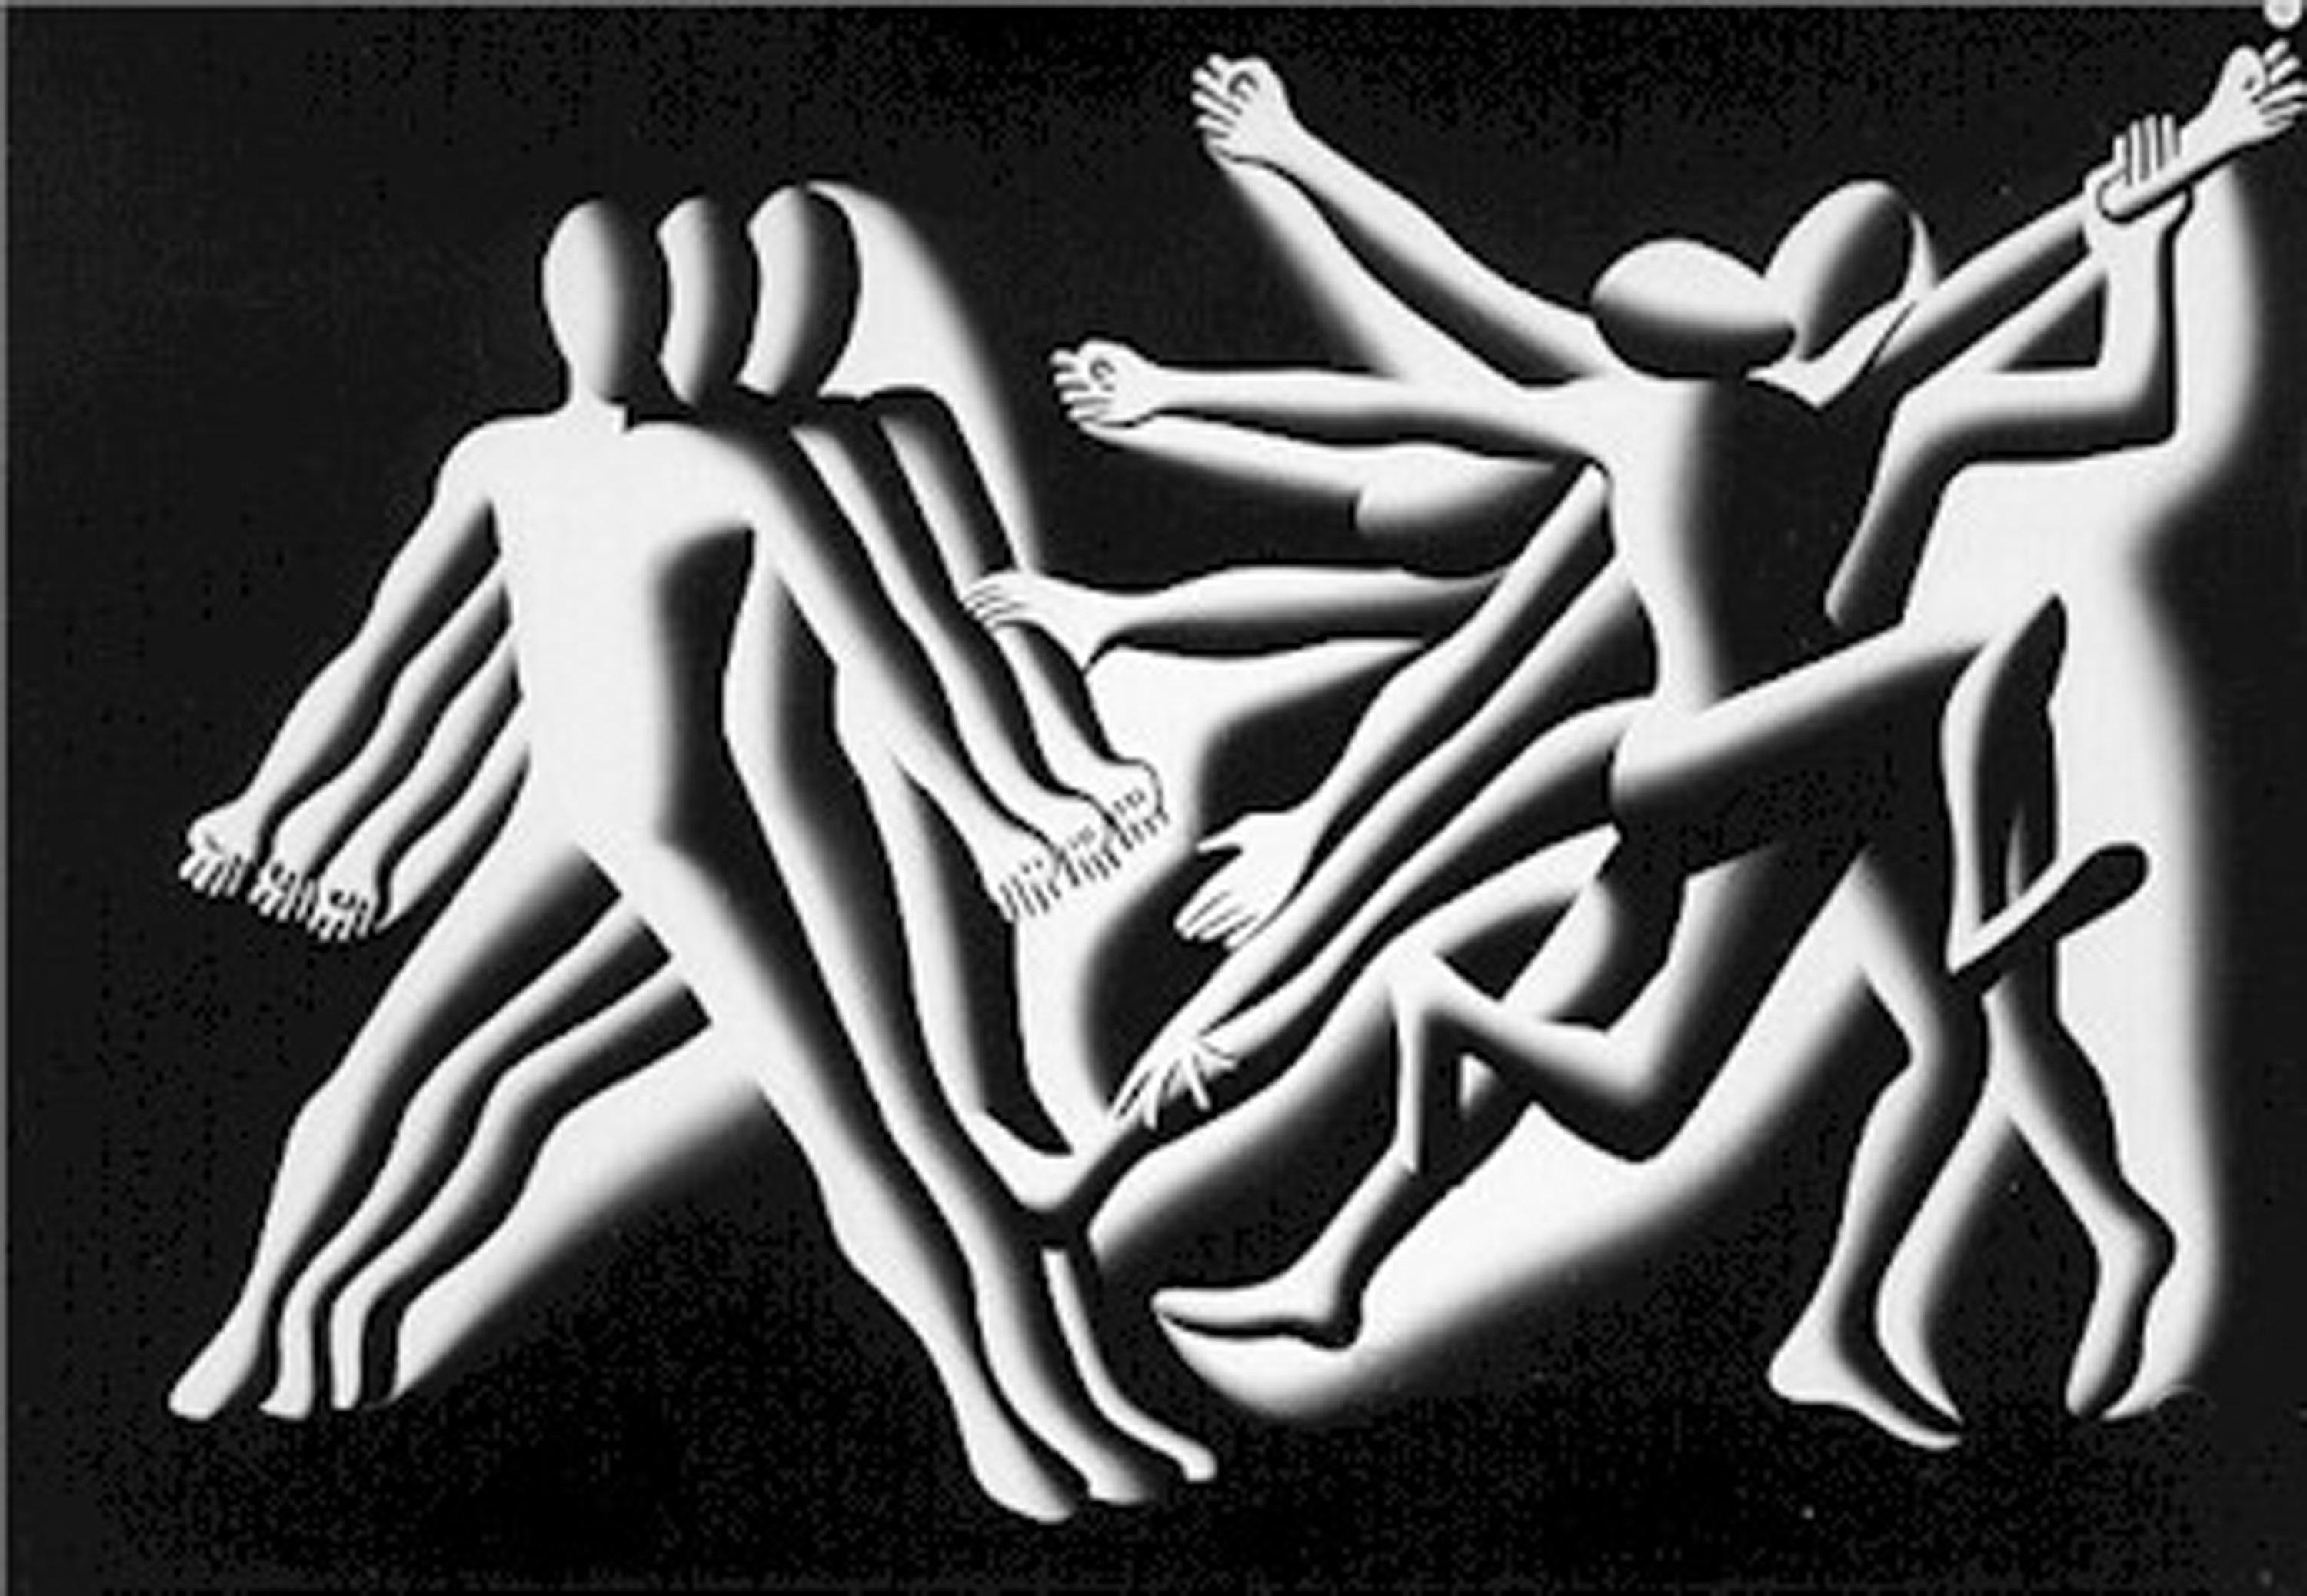 Mark Kostabi, Conservatives and Liberals, Oil Painting